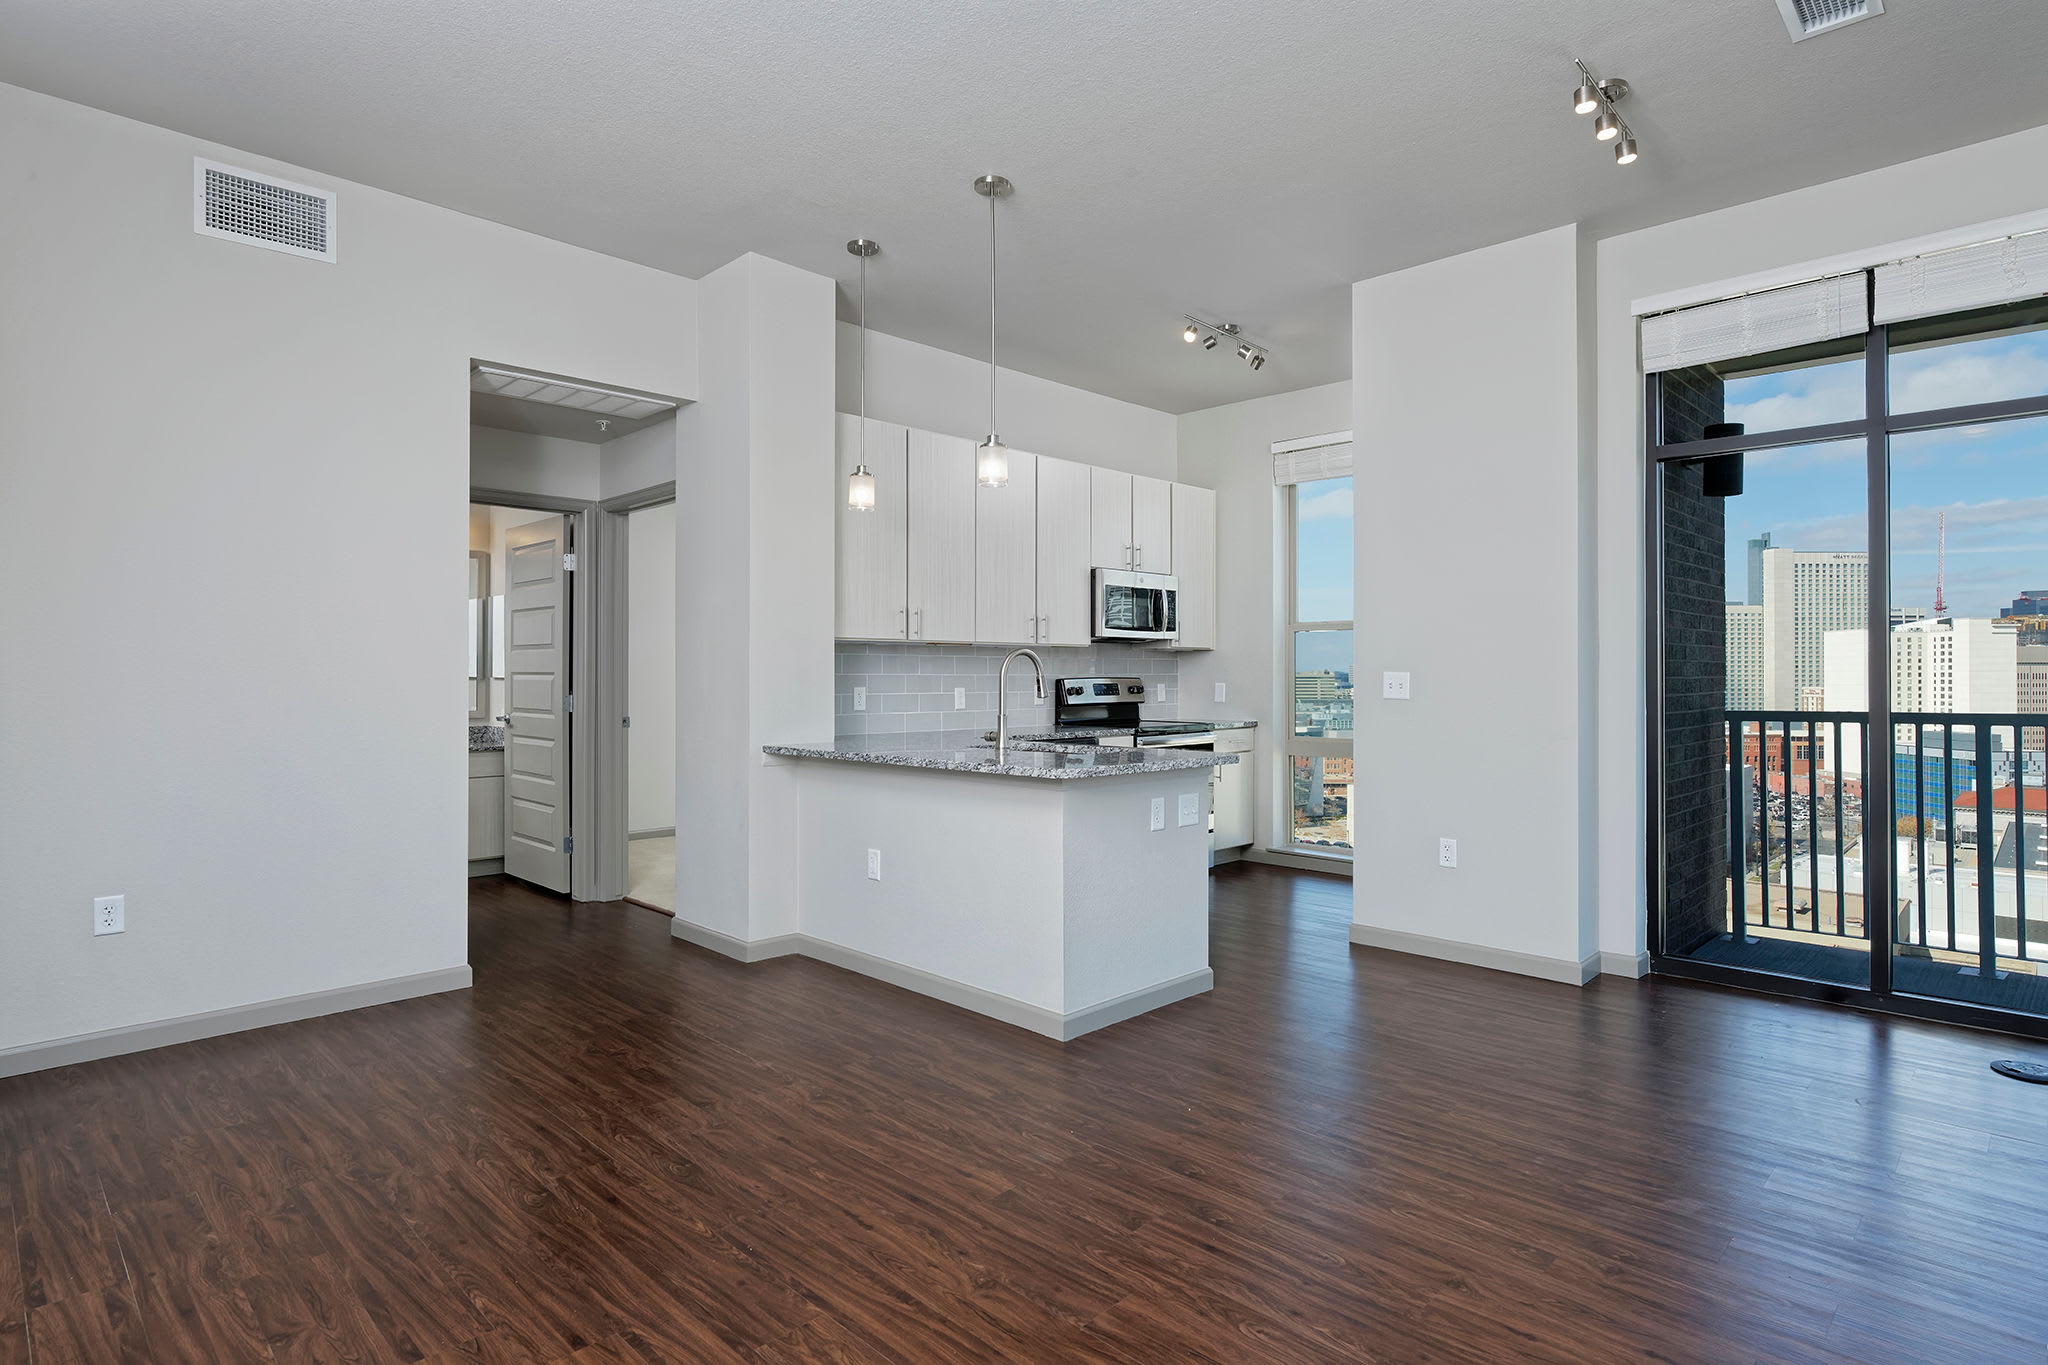 Open living rooms and kitchen area with a view at Civic Lofts in Downtown Denver, CO